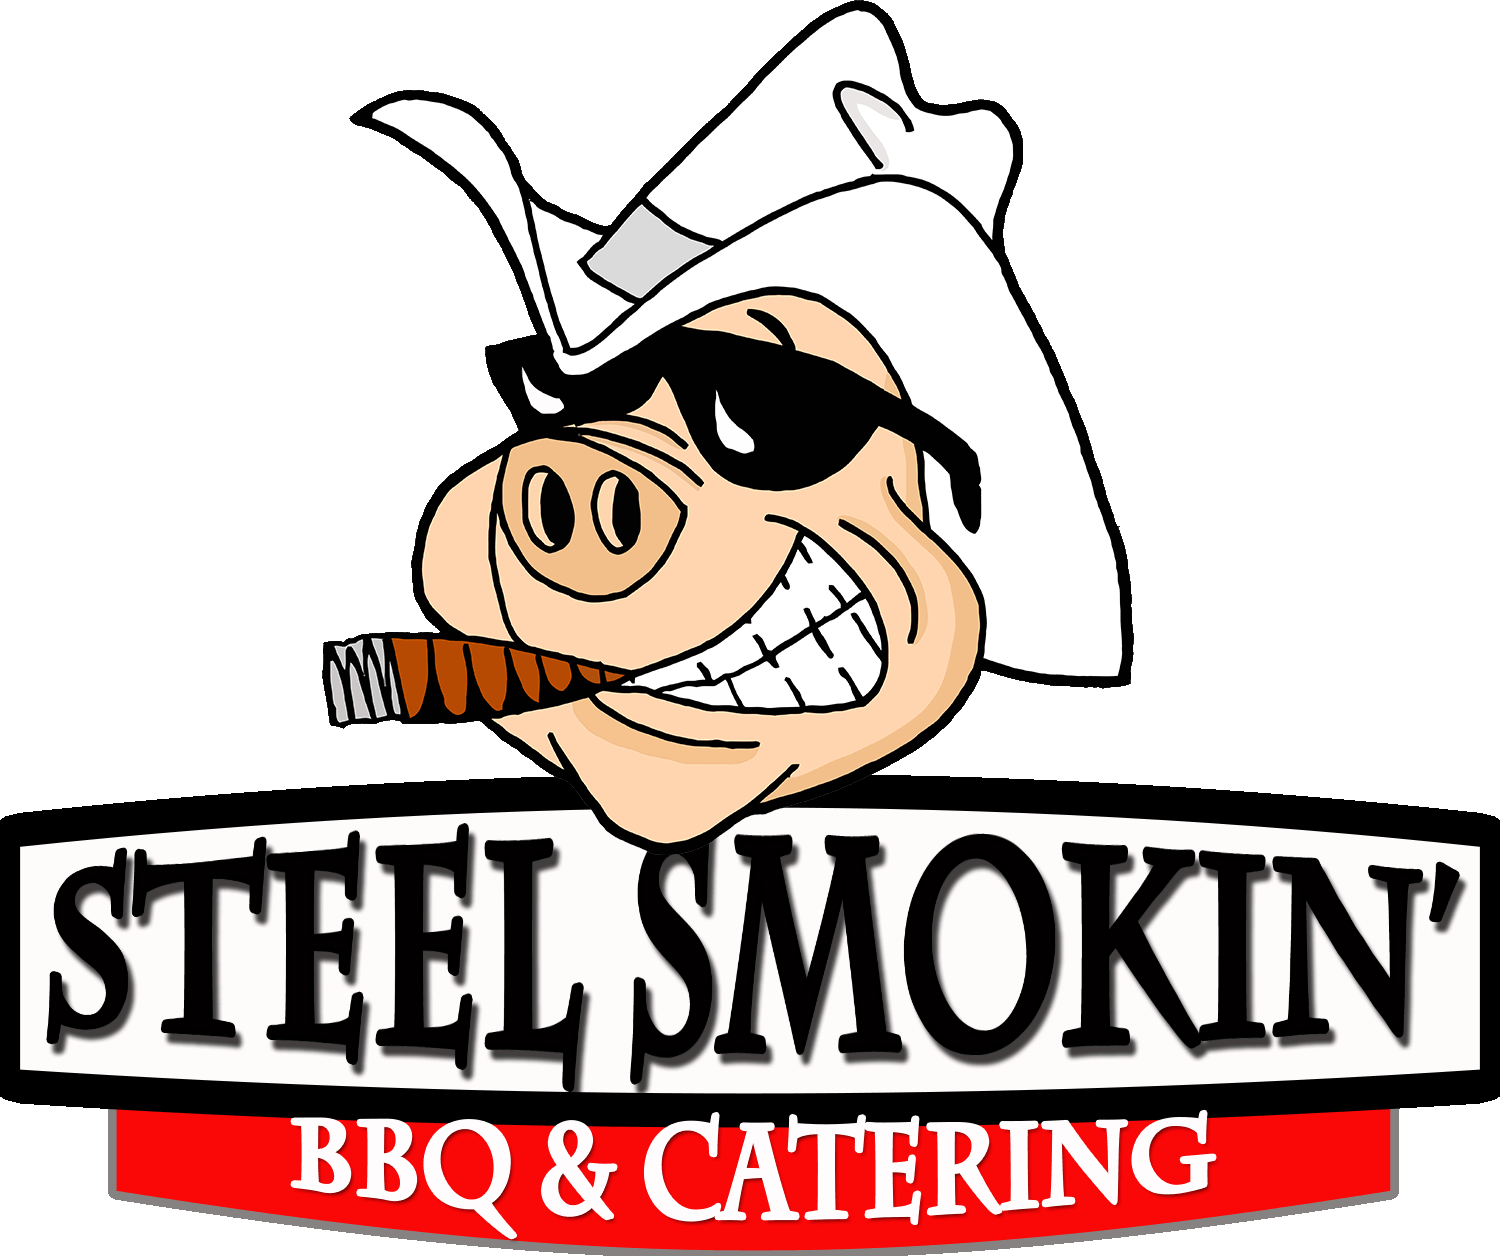 Steel Smokin' BBQ & Catering